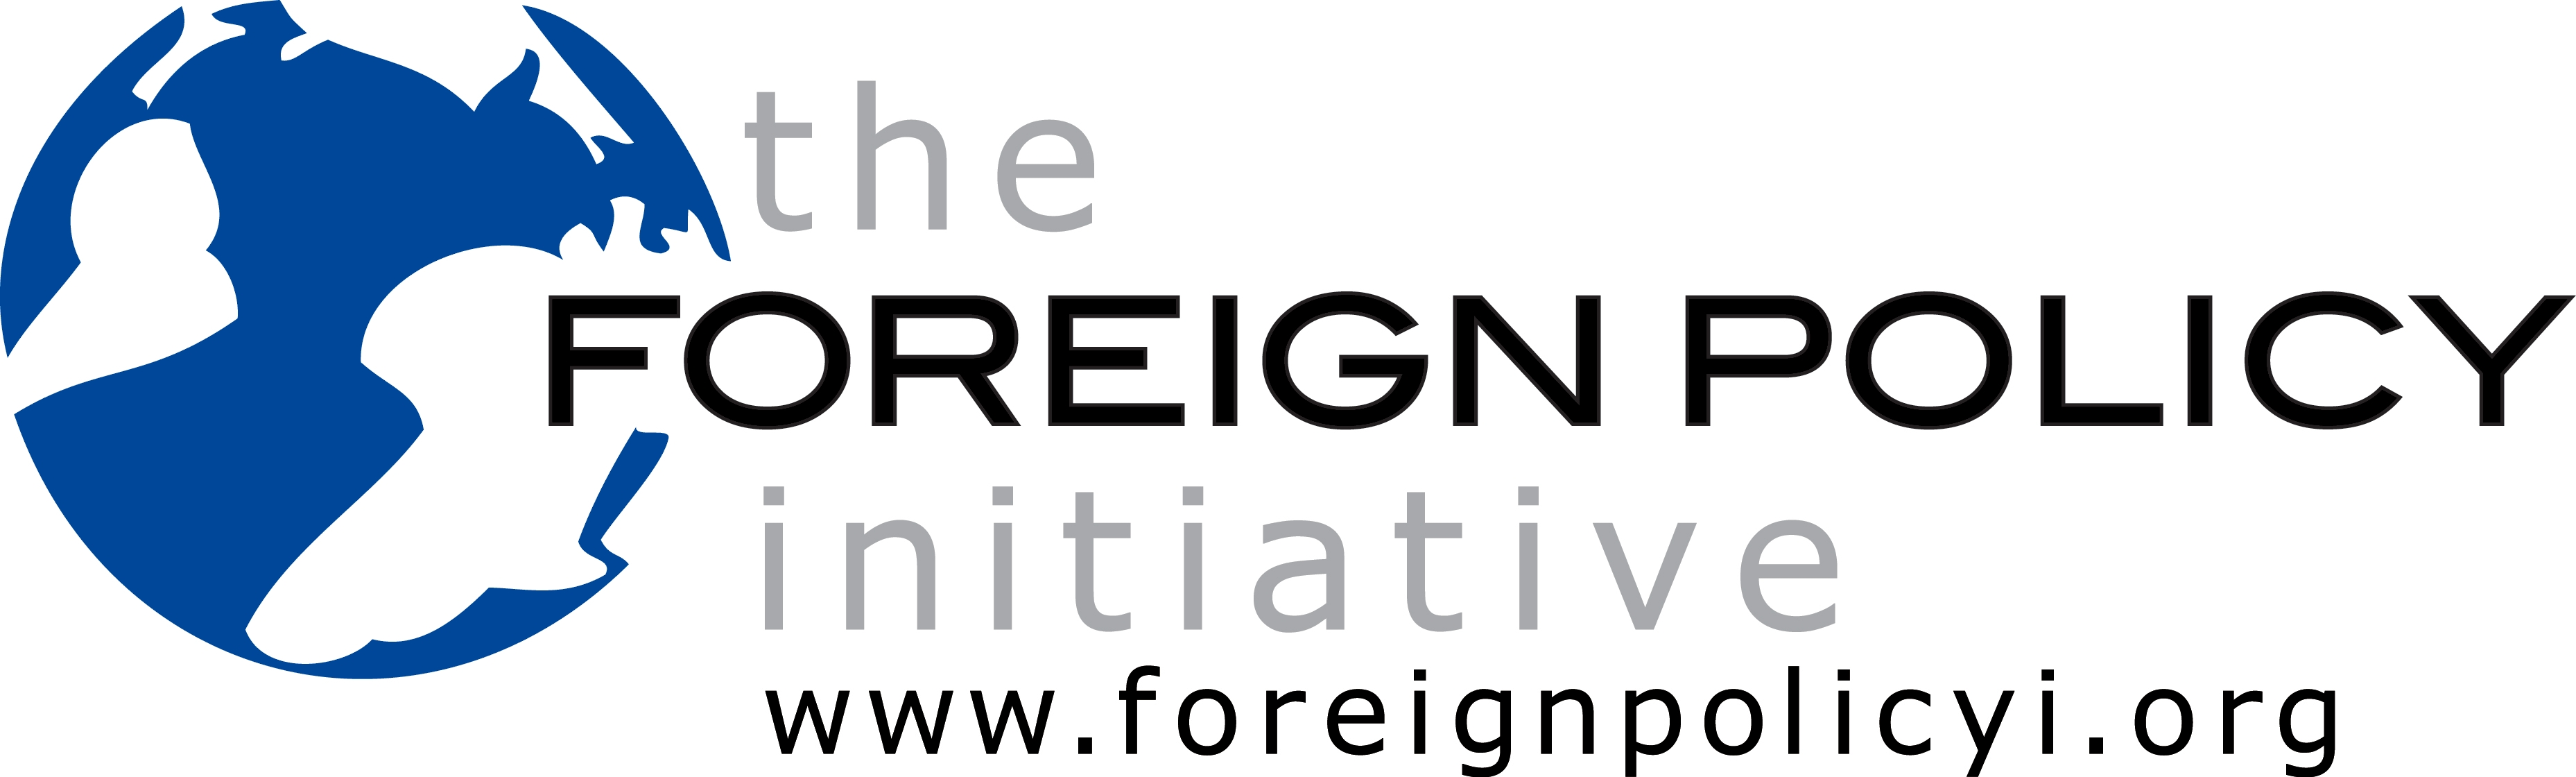 foreign policy Read the latest articles and commentary on foreign policy and foreign relations at us news.